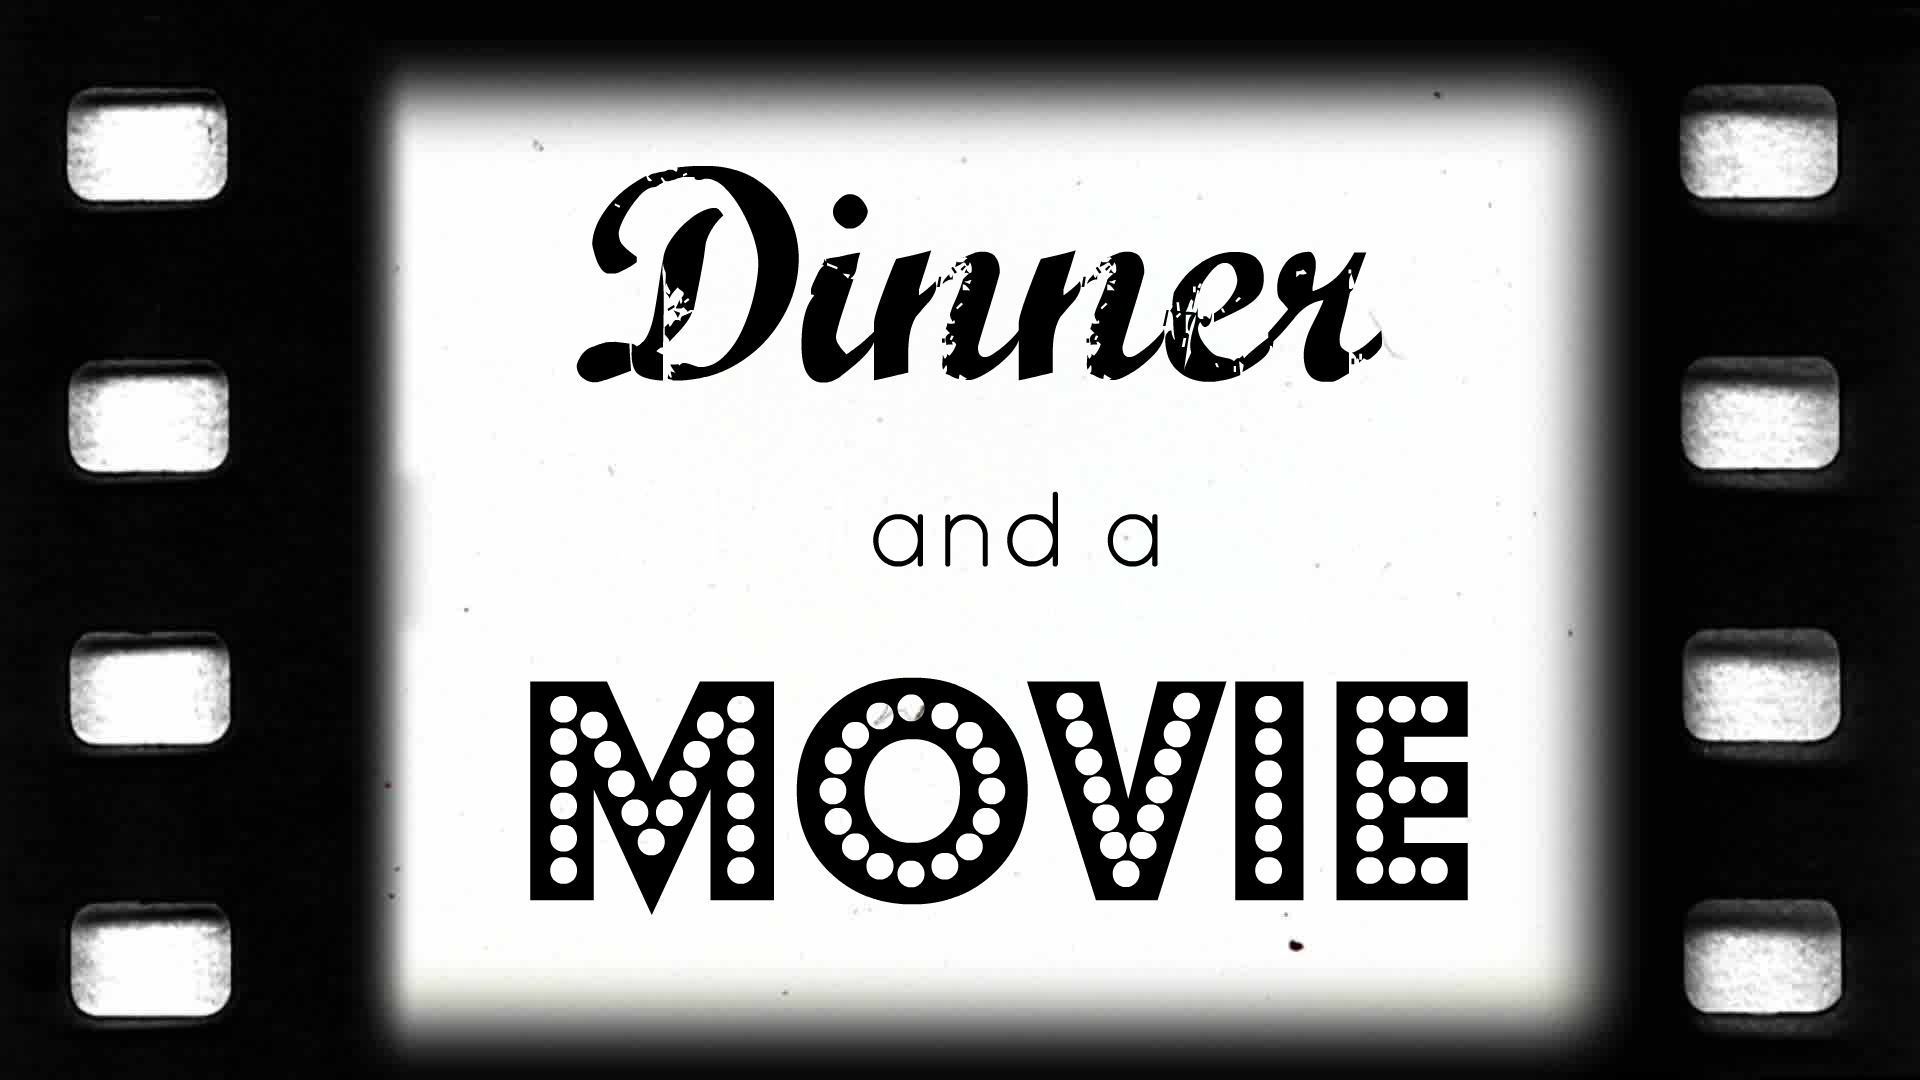 Moore Cookin Dinner and a Movie Challenge